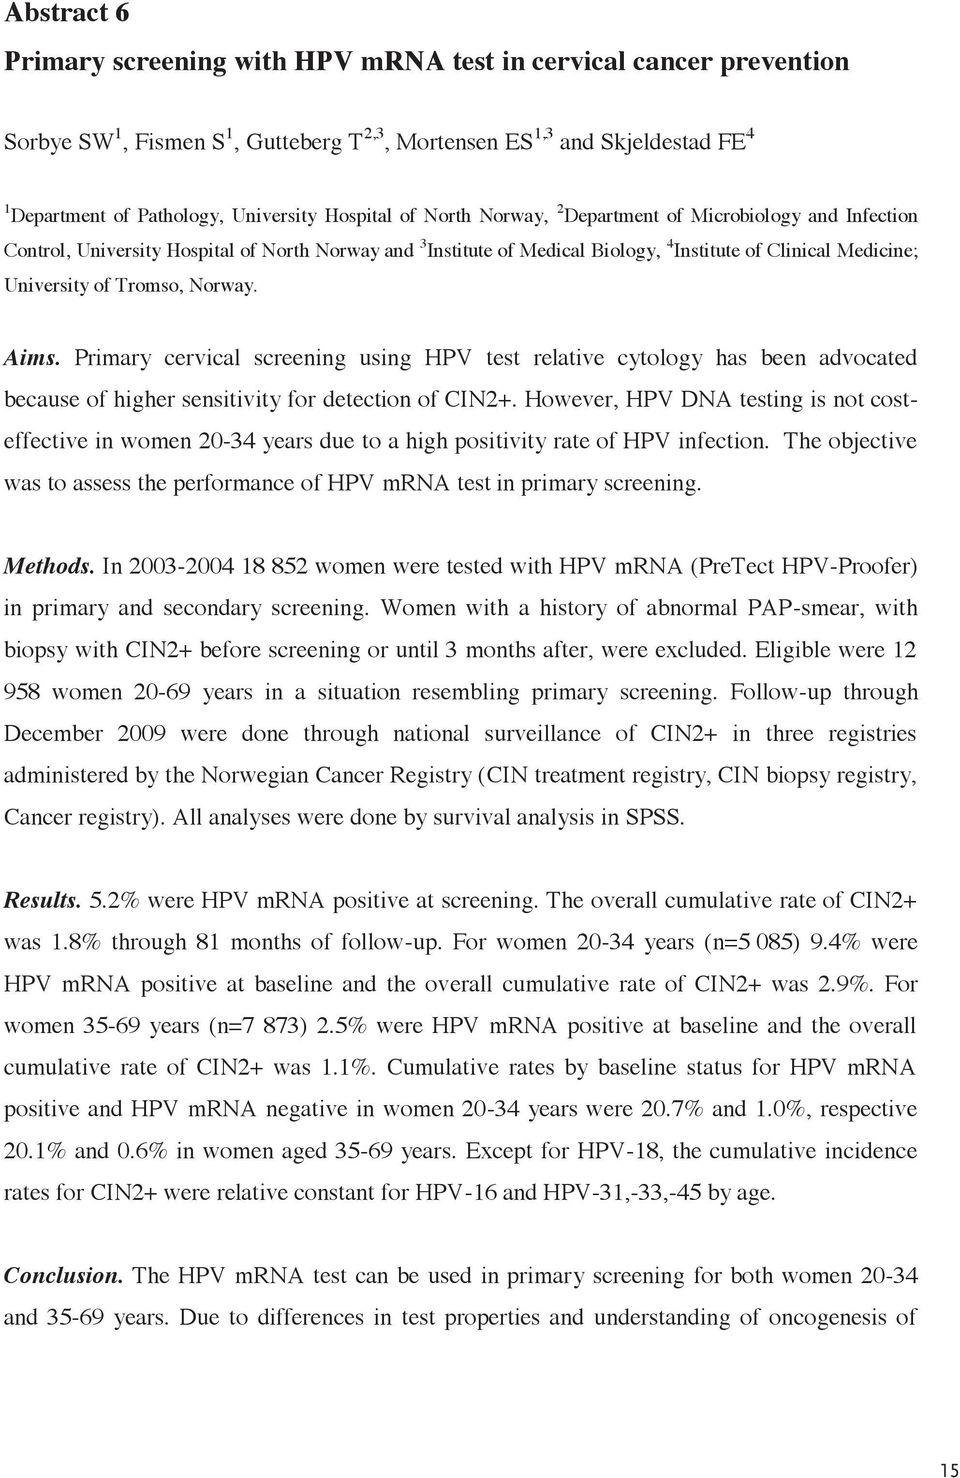 Tromso, Norway. Aims. Primary cervical screening using HPV test relative cytology has been advocated because of higher sensitivity for detection of CIN2+.